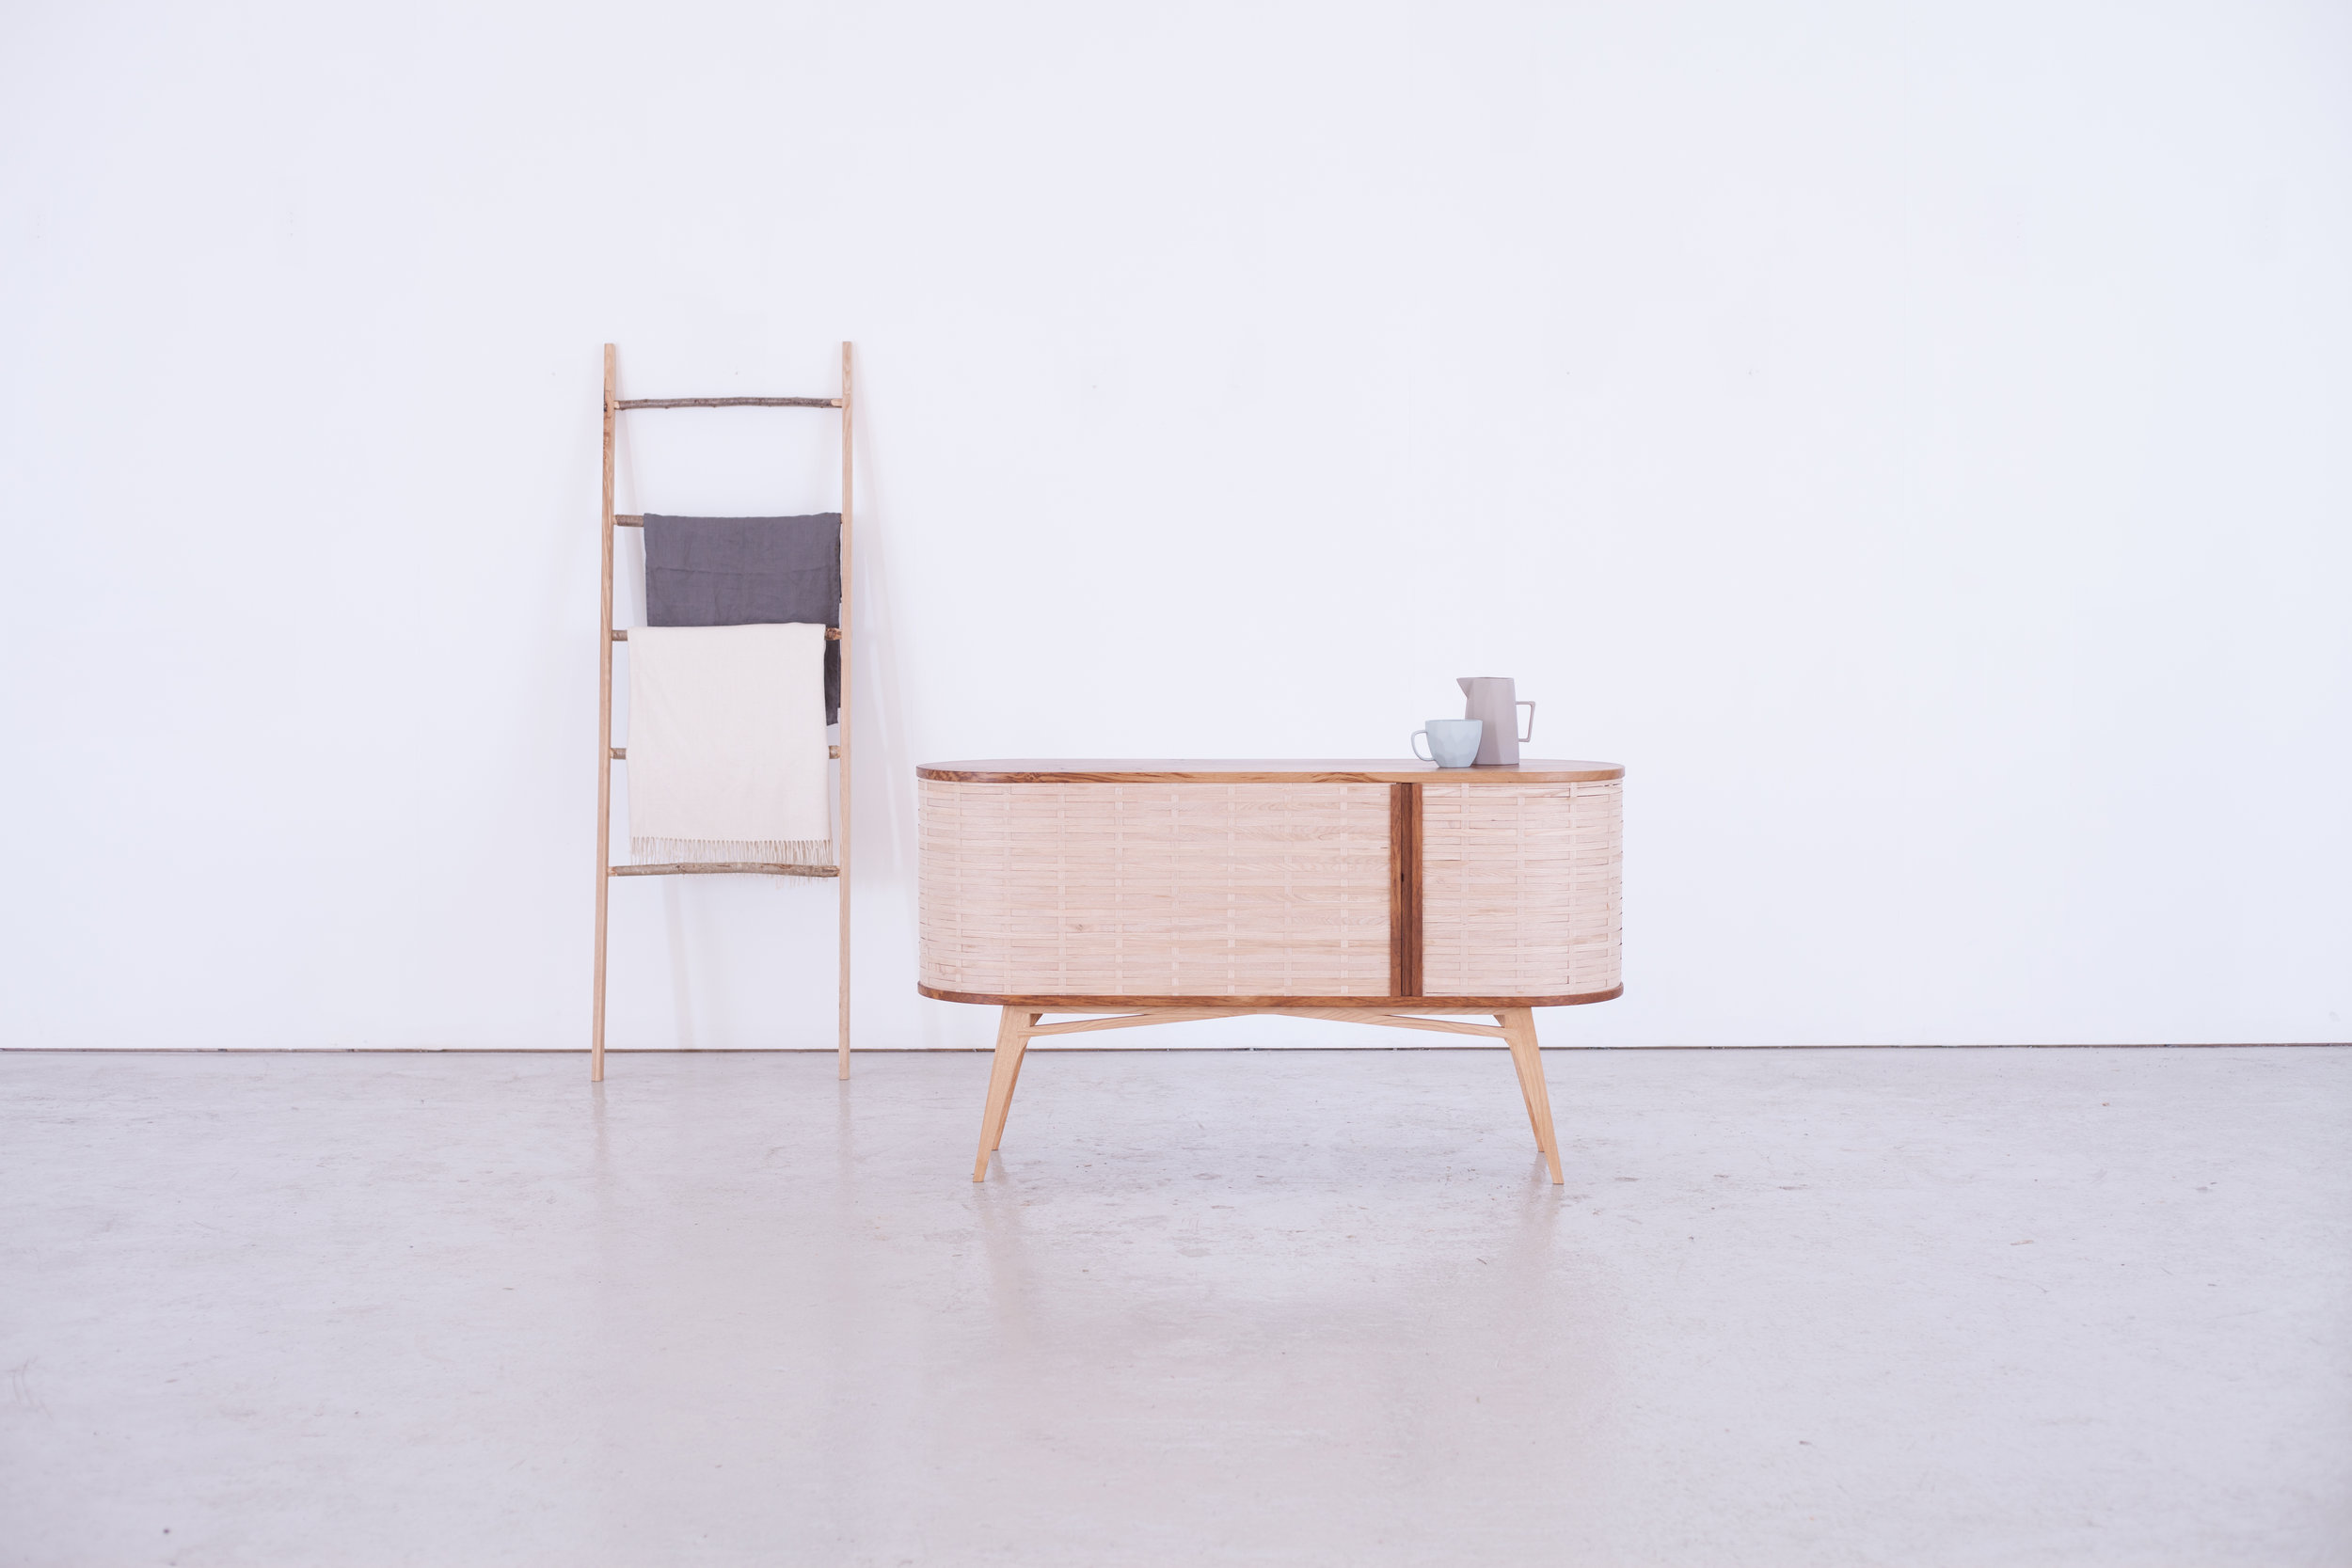 Bayleaf sideboard and Underwood, mopstick ladder.